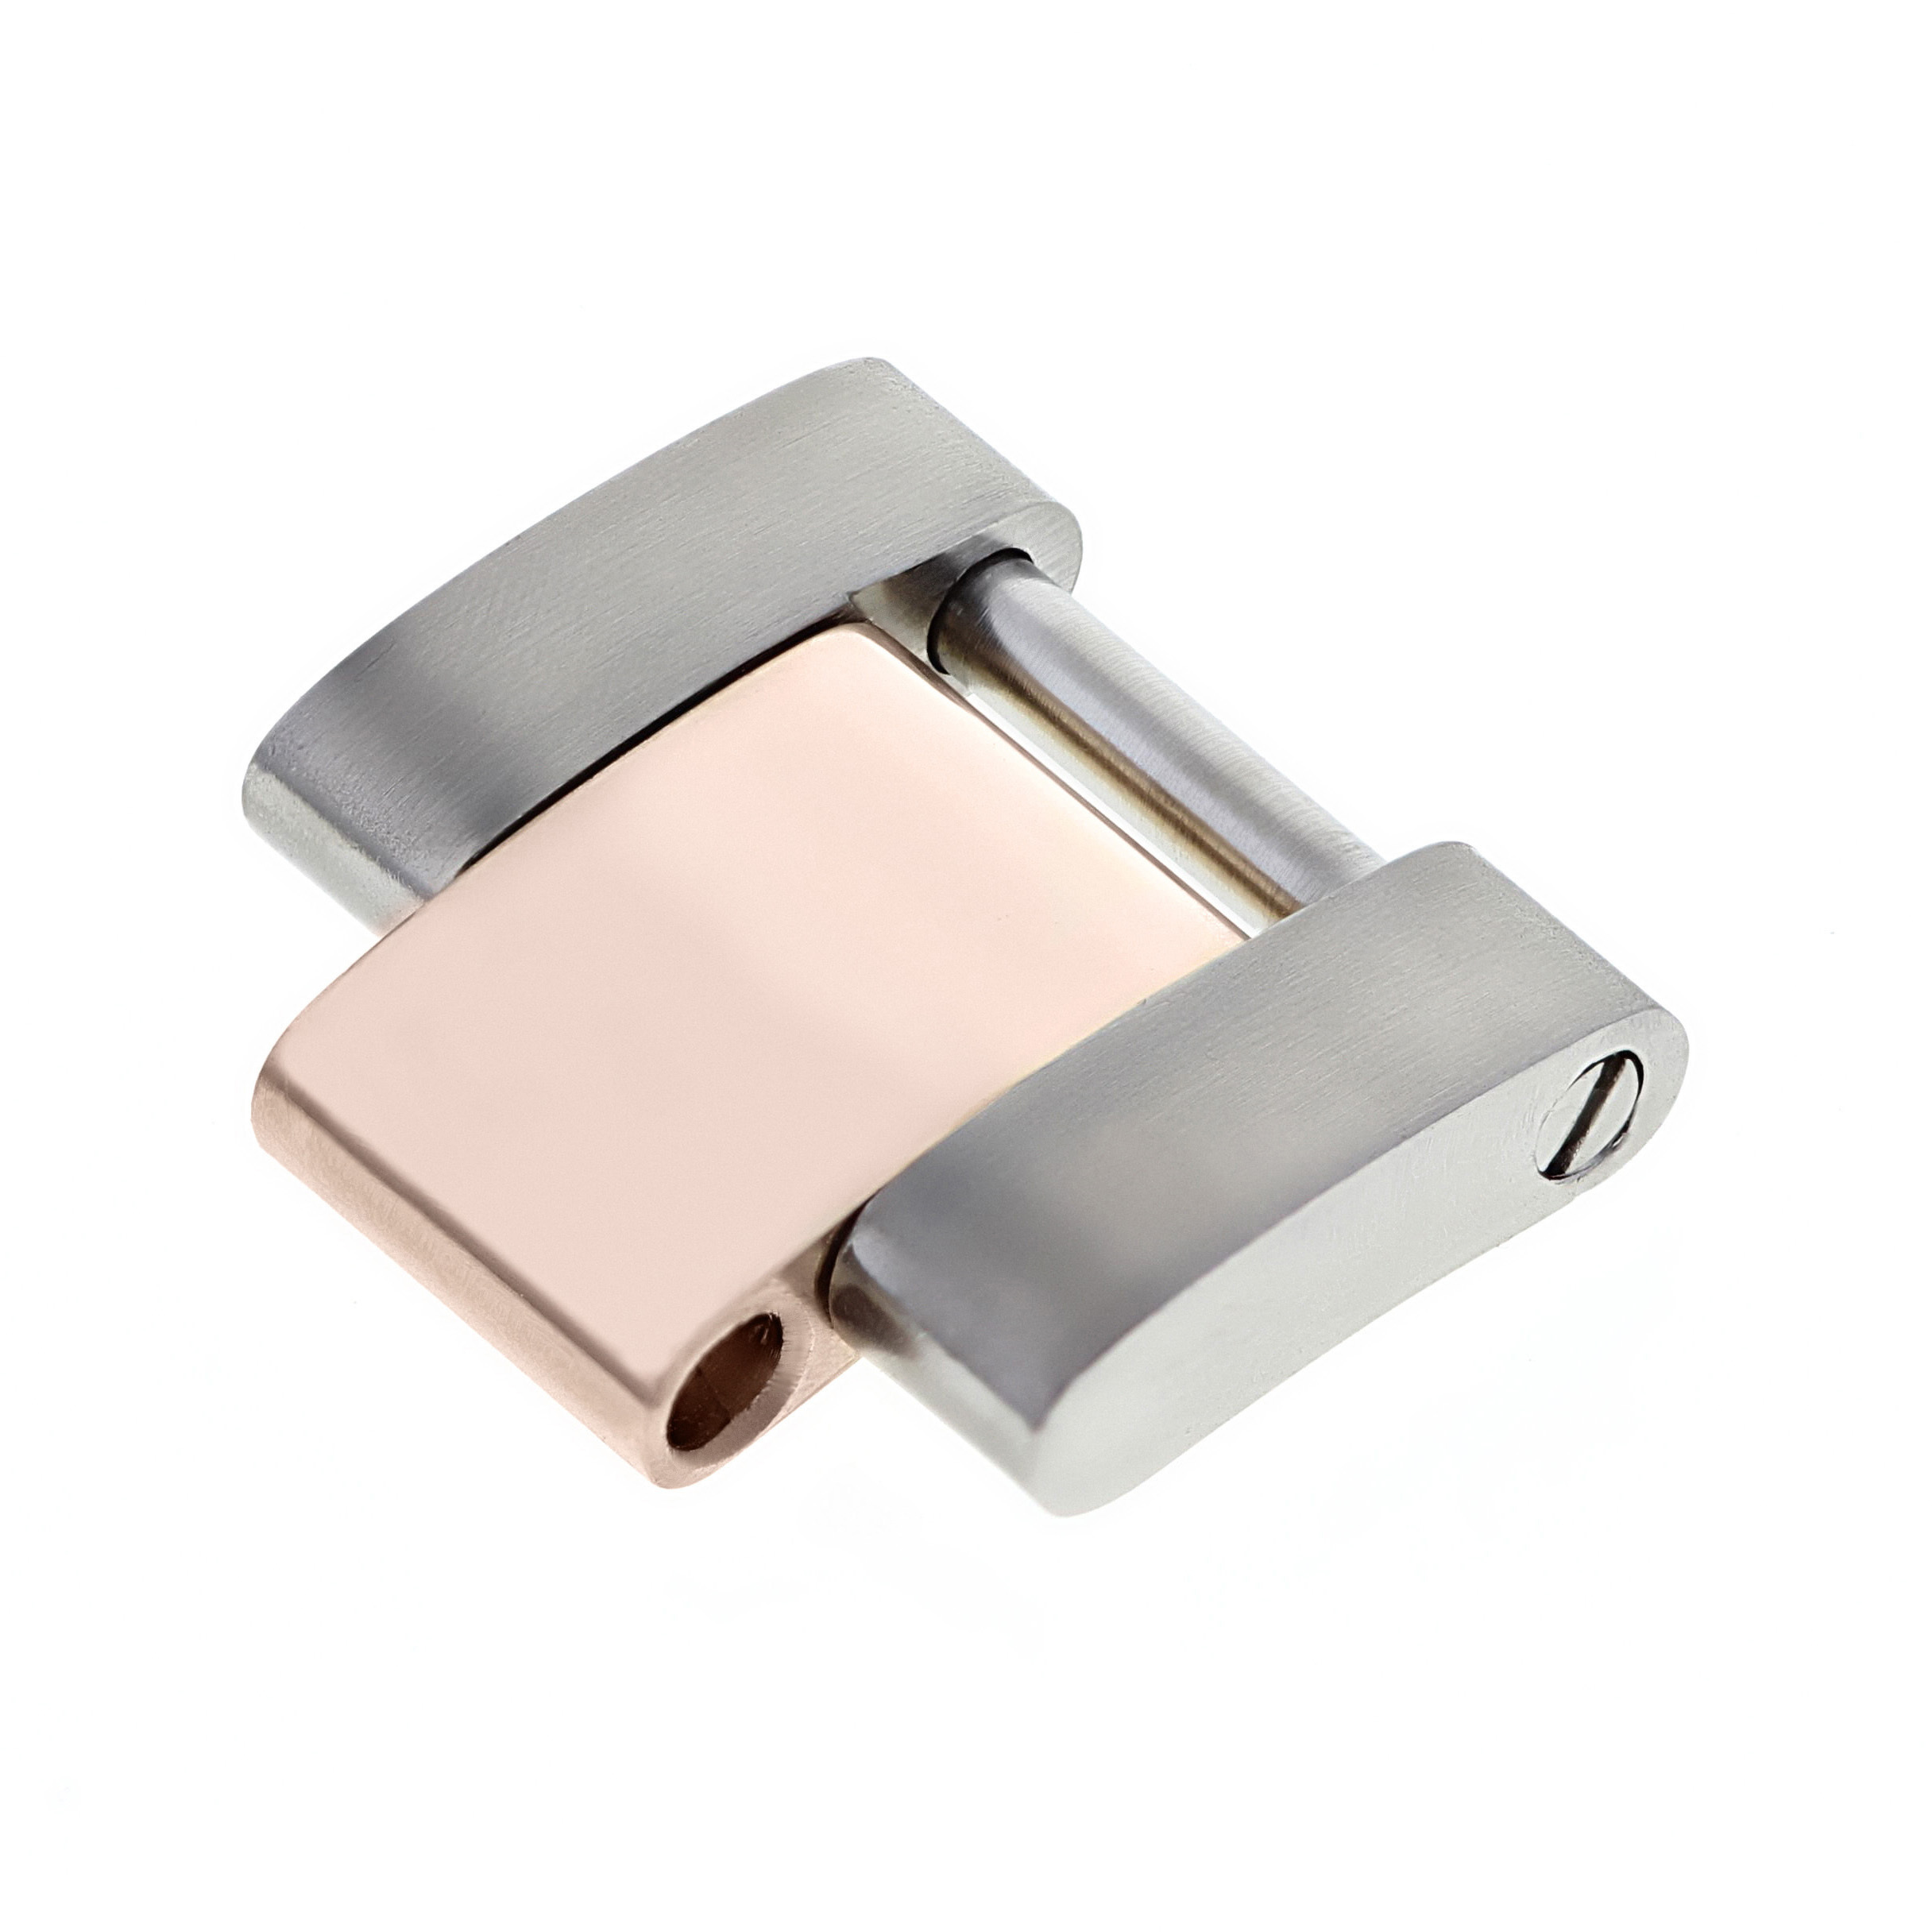 ROSE REAL18K/SS SOLID GOLD OYSTER WATCH BAND LINK FOR ROLEX MIDSIZE 17834 178341